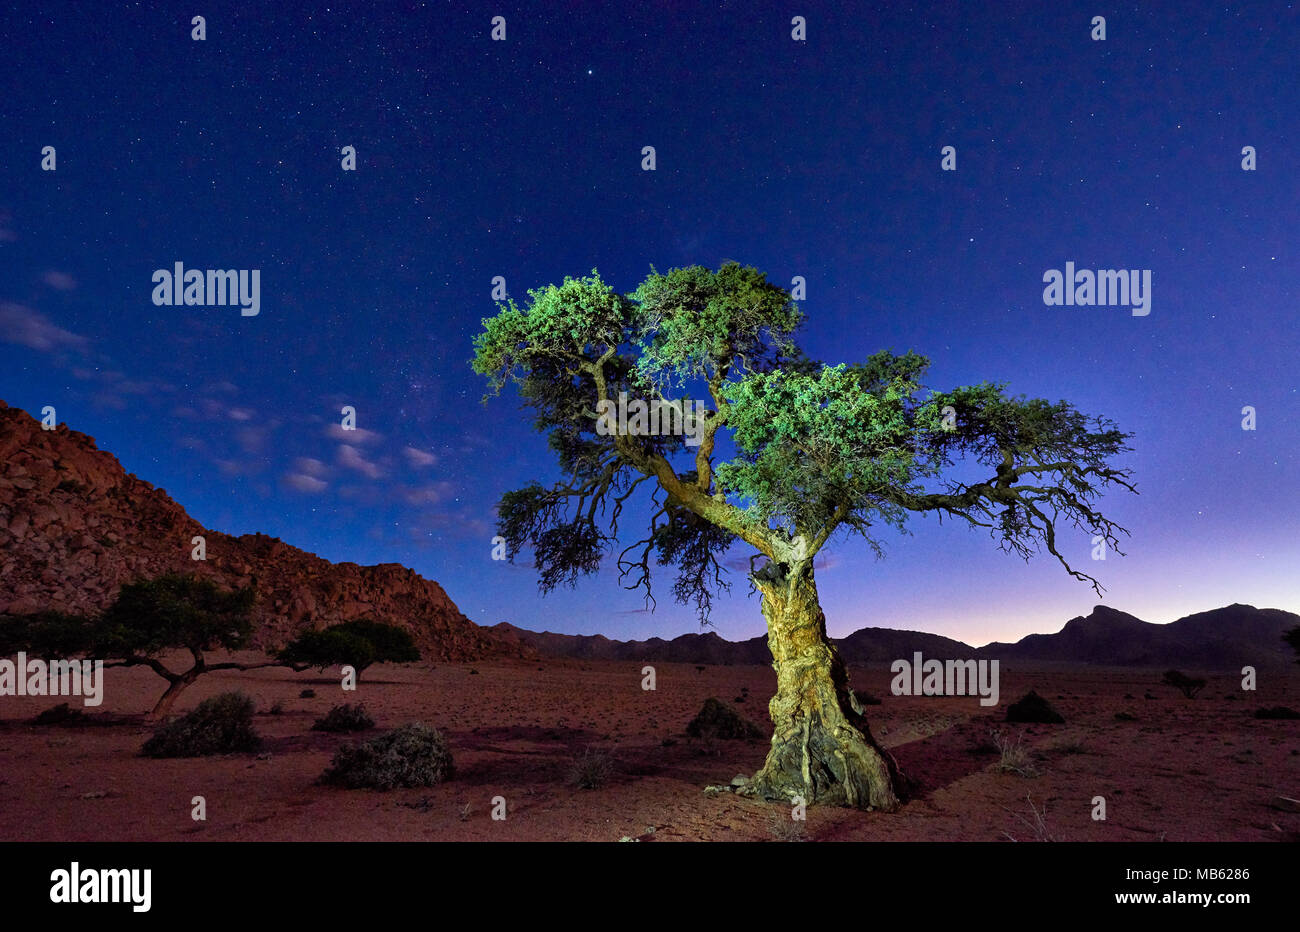 night shot of a tree with moonlight under sky with stars in tranquil landscape on Farm Namtib, Tiras mountains, Namibia, Africa Stock Photo